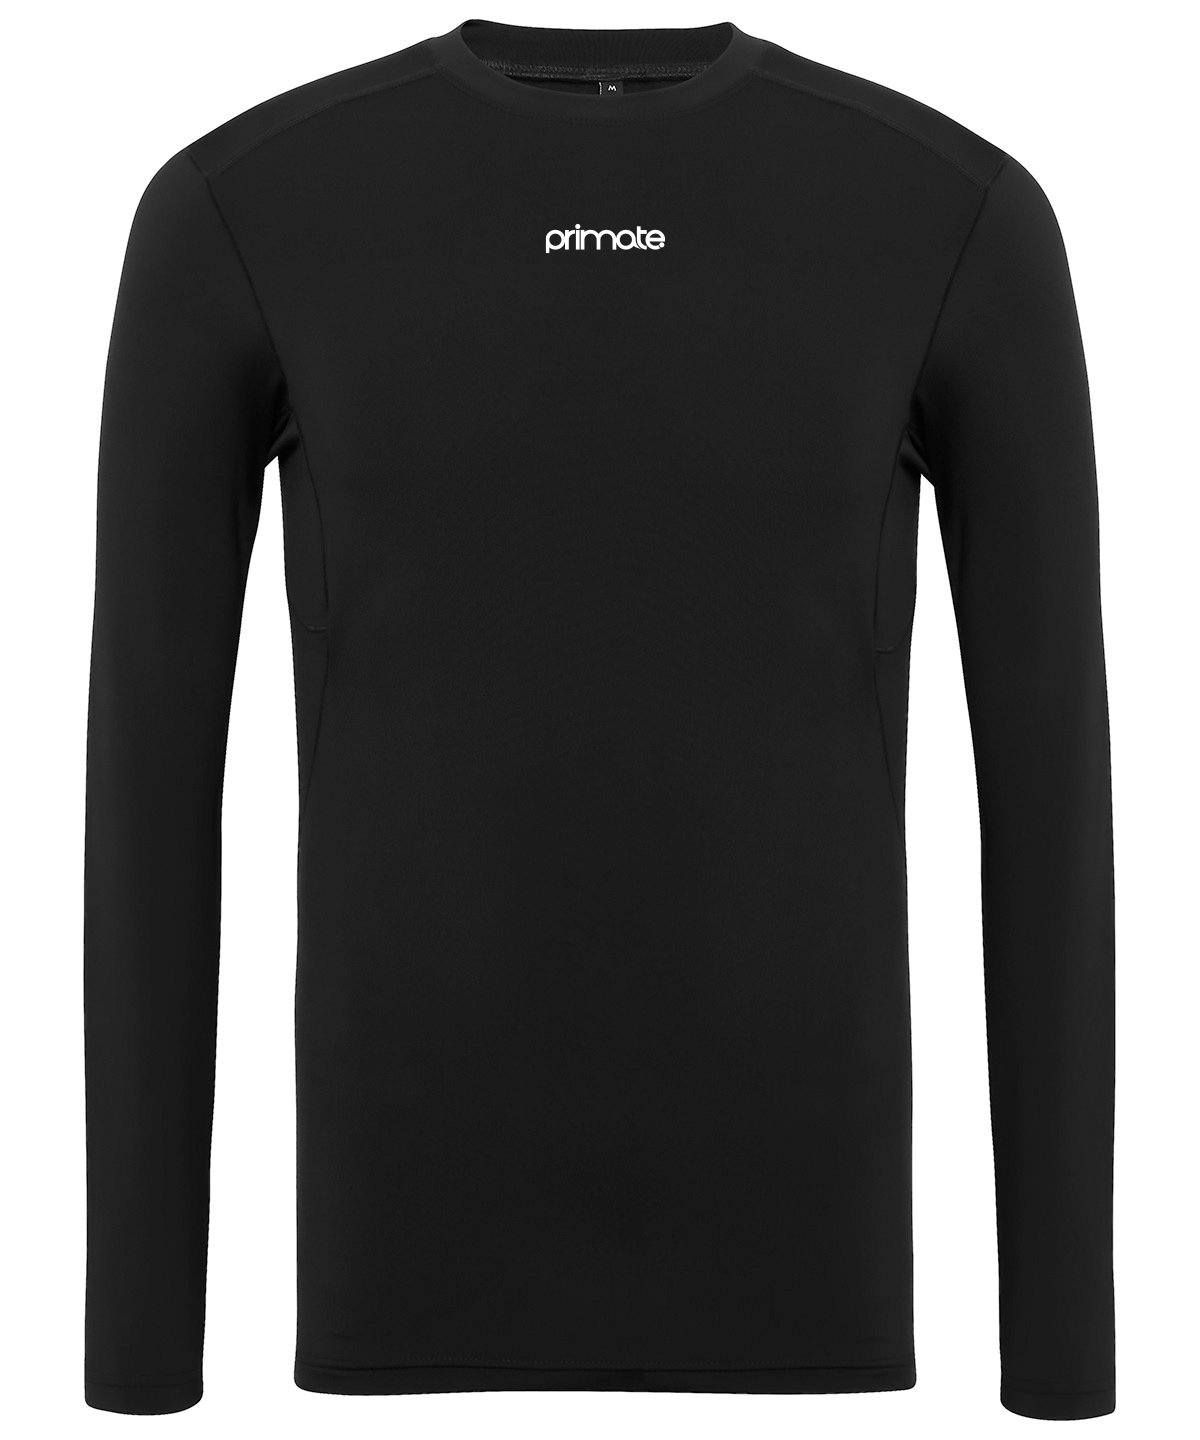 Black & White Performance Baselayer Primate Activewear